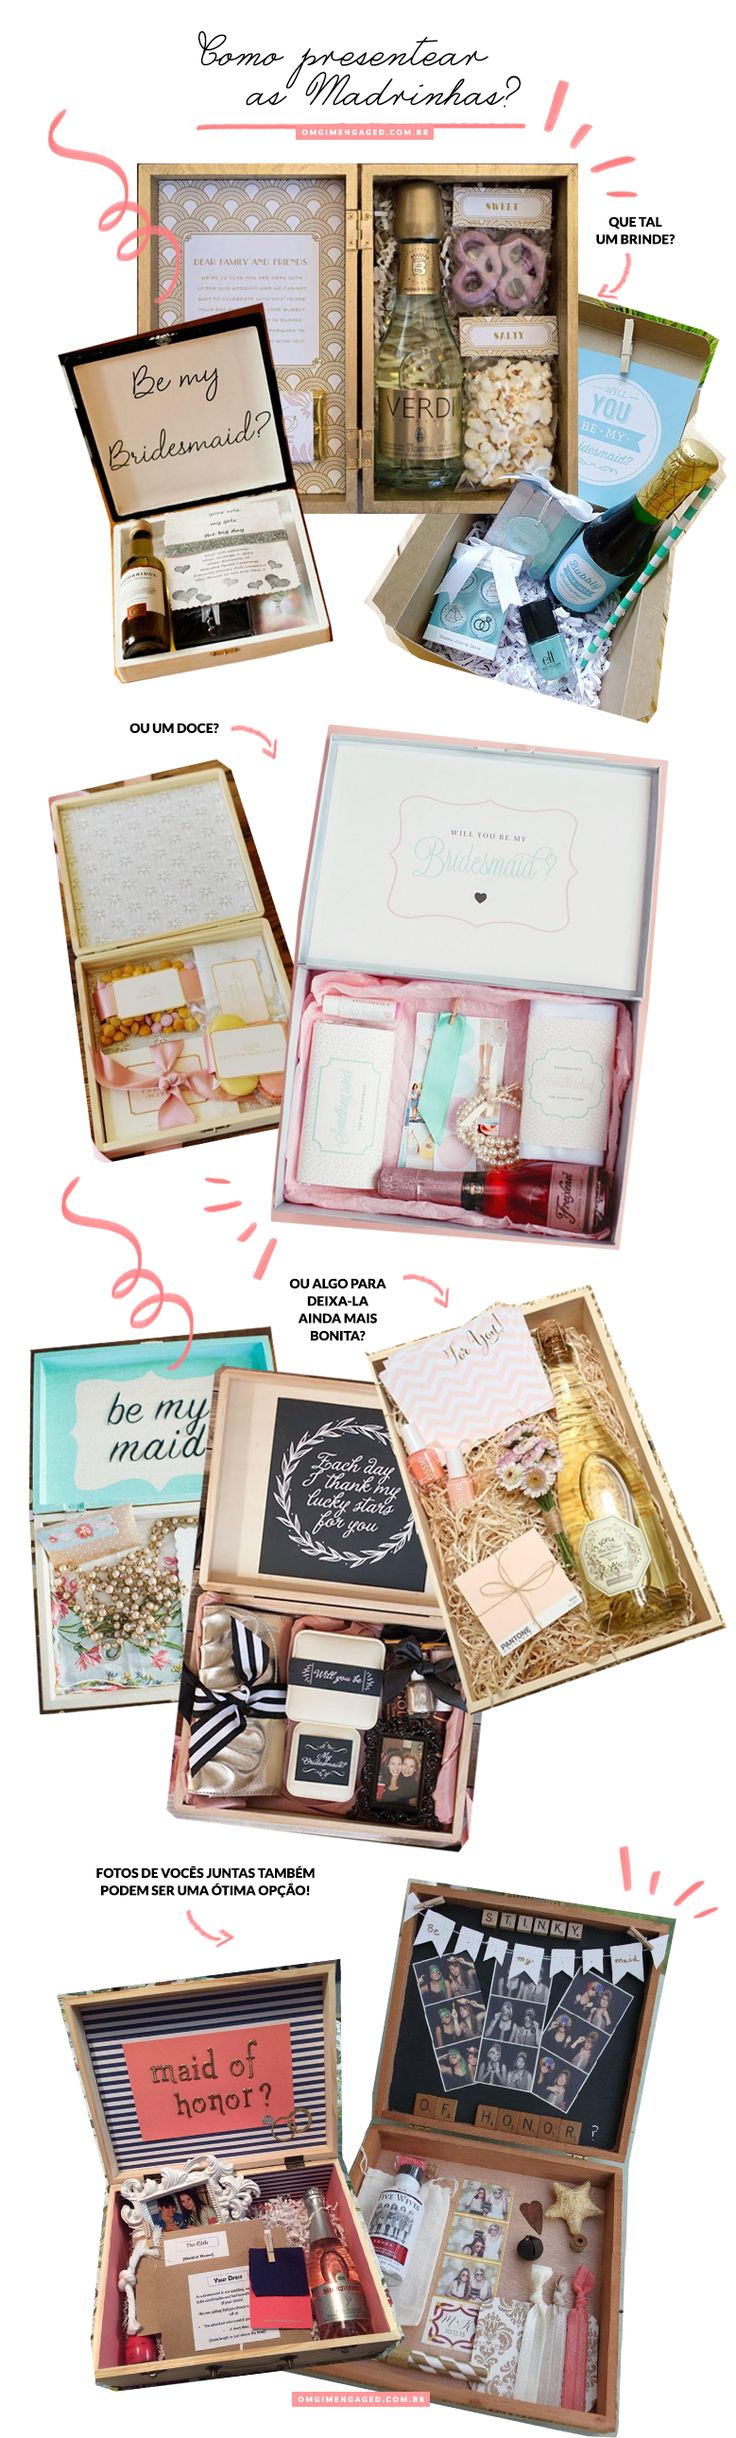 Blog OMG I'm Engaged - Idéias de presentes para madrinhas de casamento. Bridesmaid gift box.